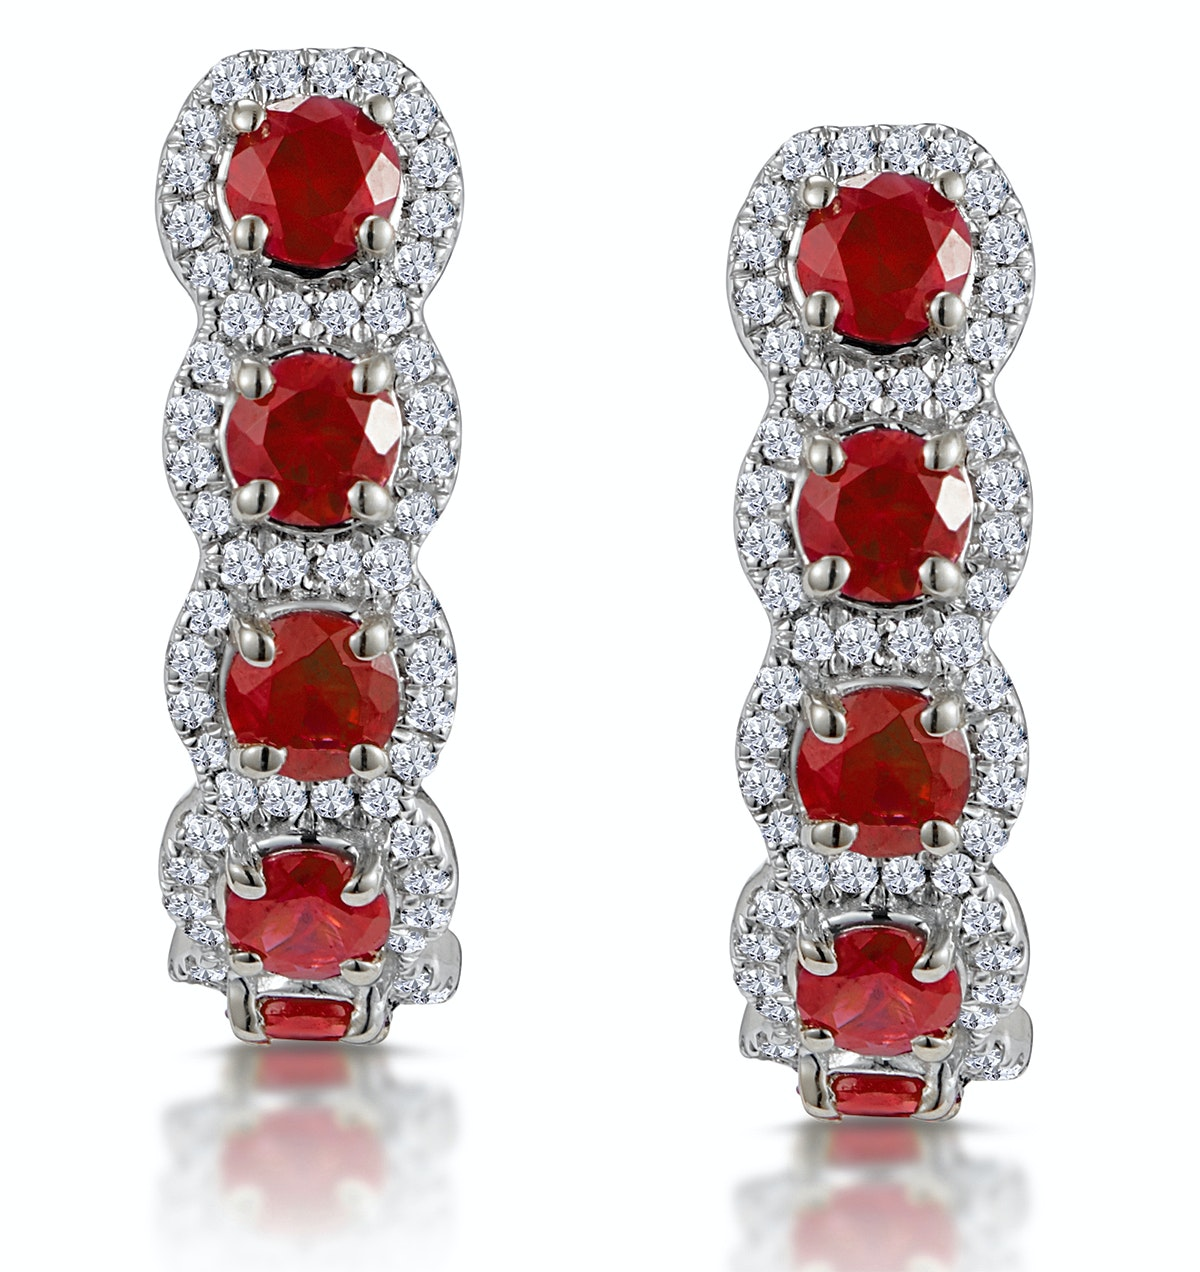 1.50ct Ruby and Diamond Halo Asteria Earrings in 18K White Gold